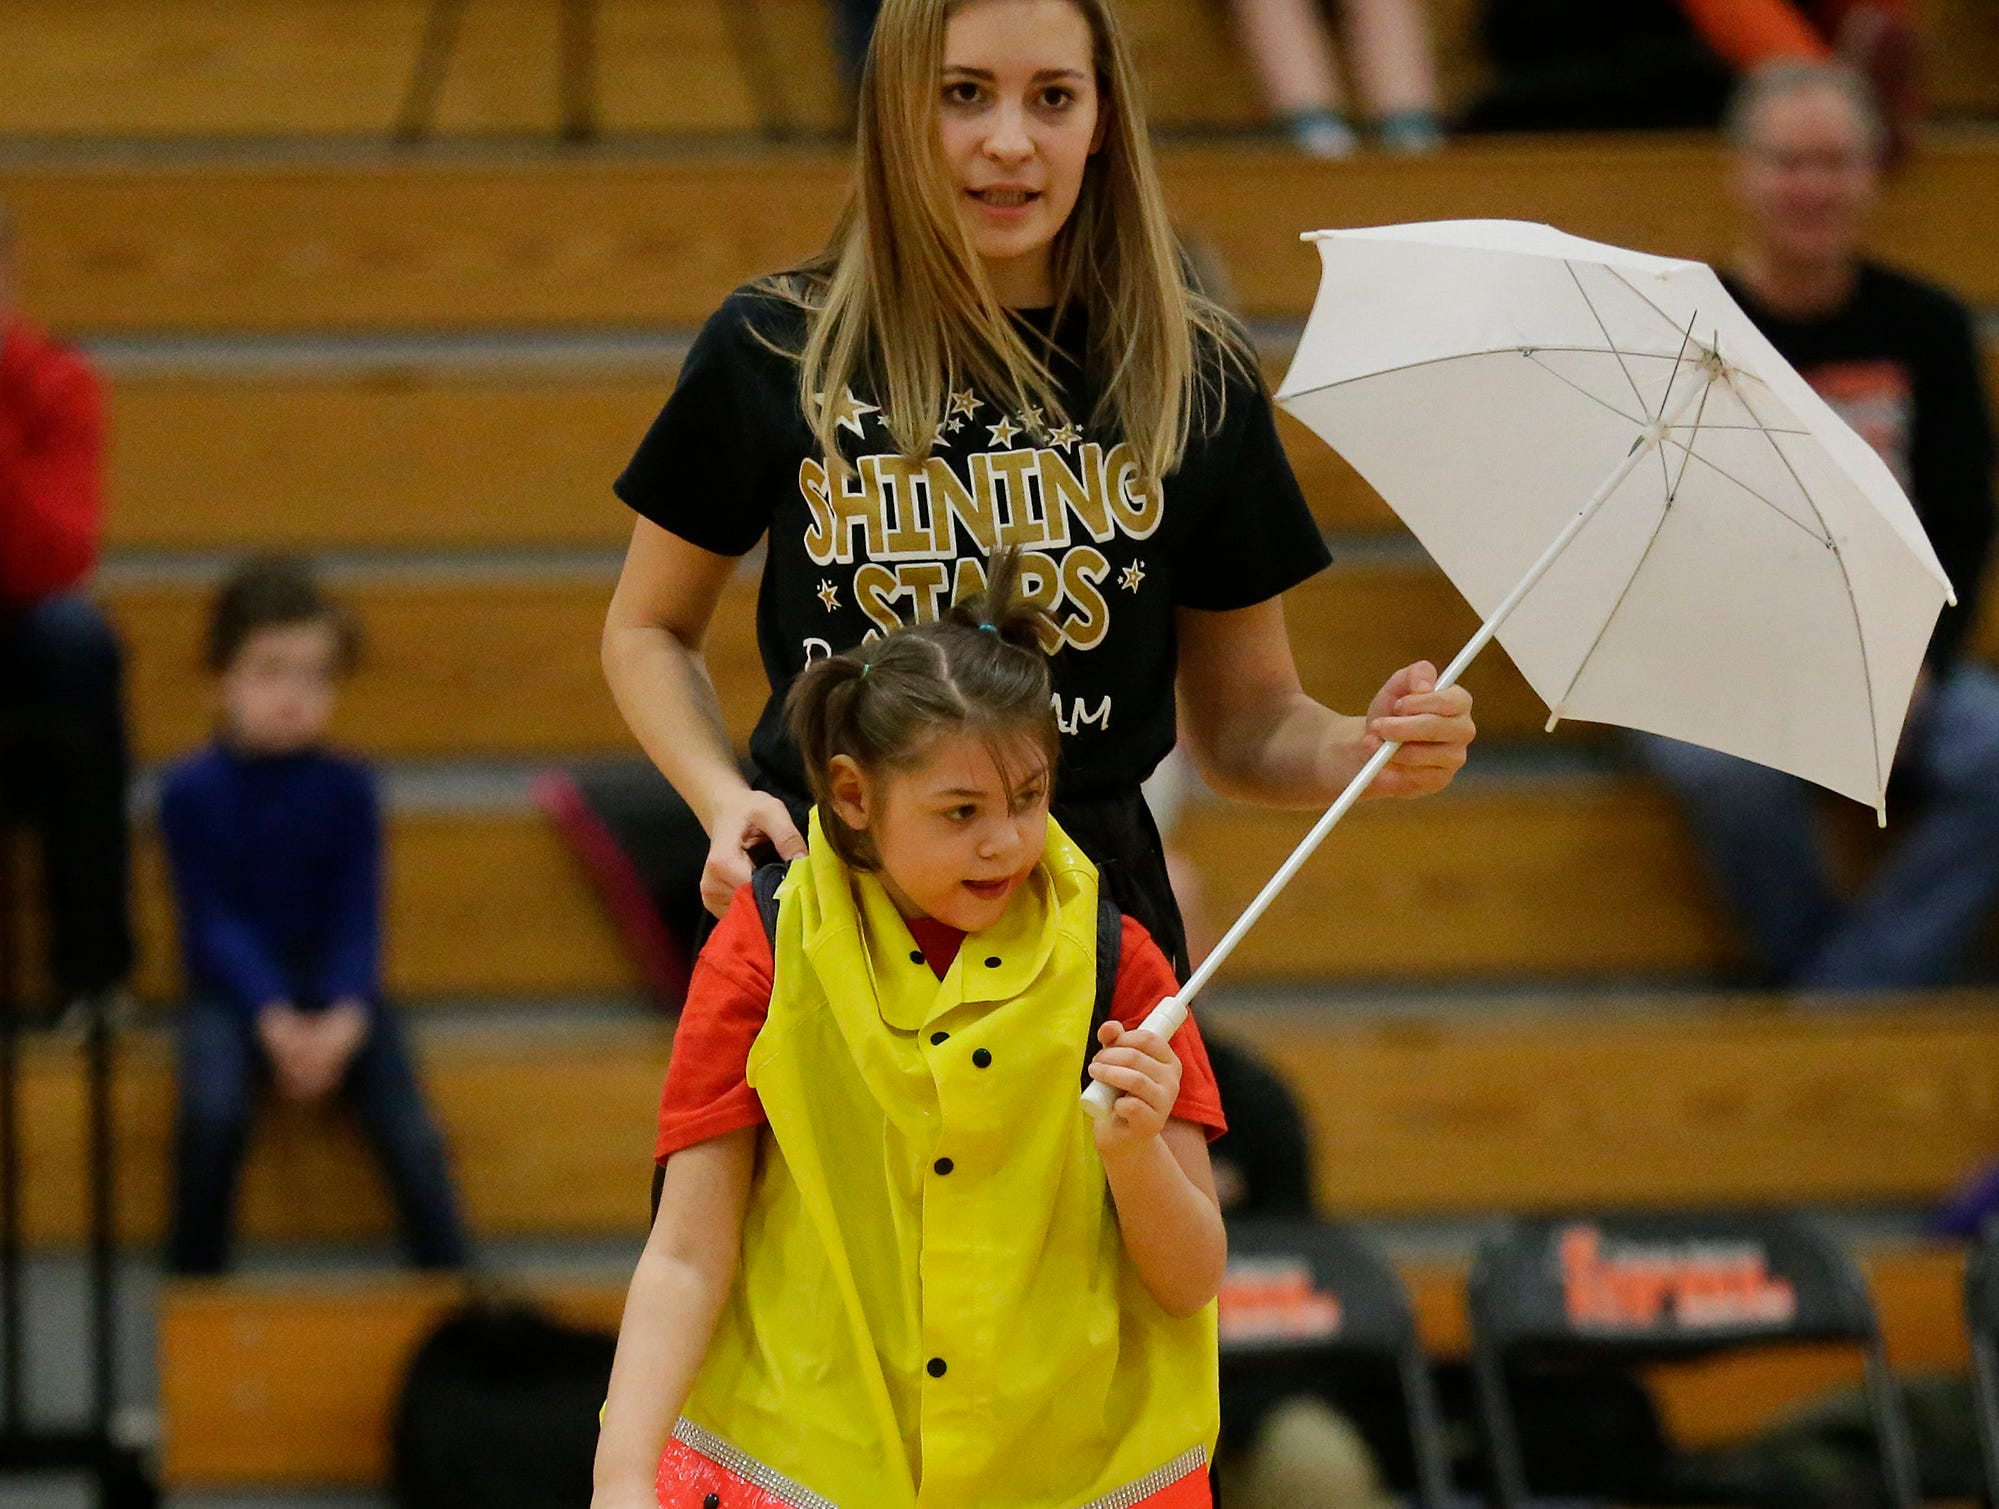 Gabrielle Feucht uses a specially made uniform to support Lyssa Brath as they perform with the Shining Stars Dance Team during halftime of the North Fond du Lac High School vs. St. Mary's Springs Academy girls basketball game Jan. 4 at North Fond du Lac High School.